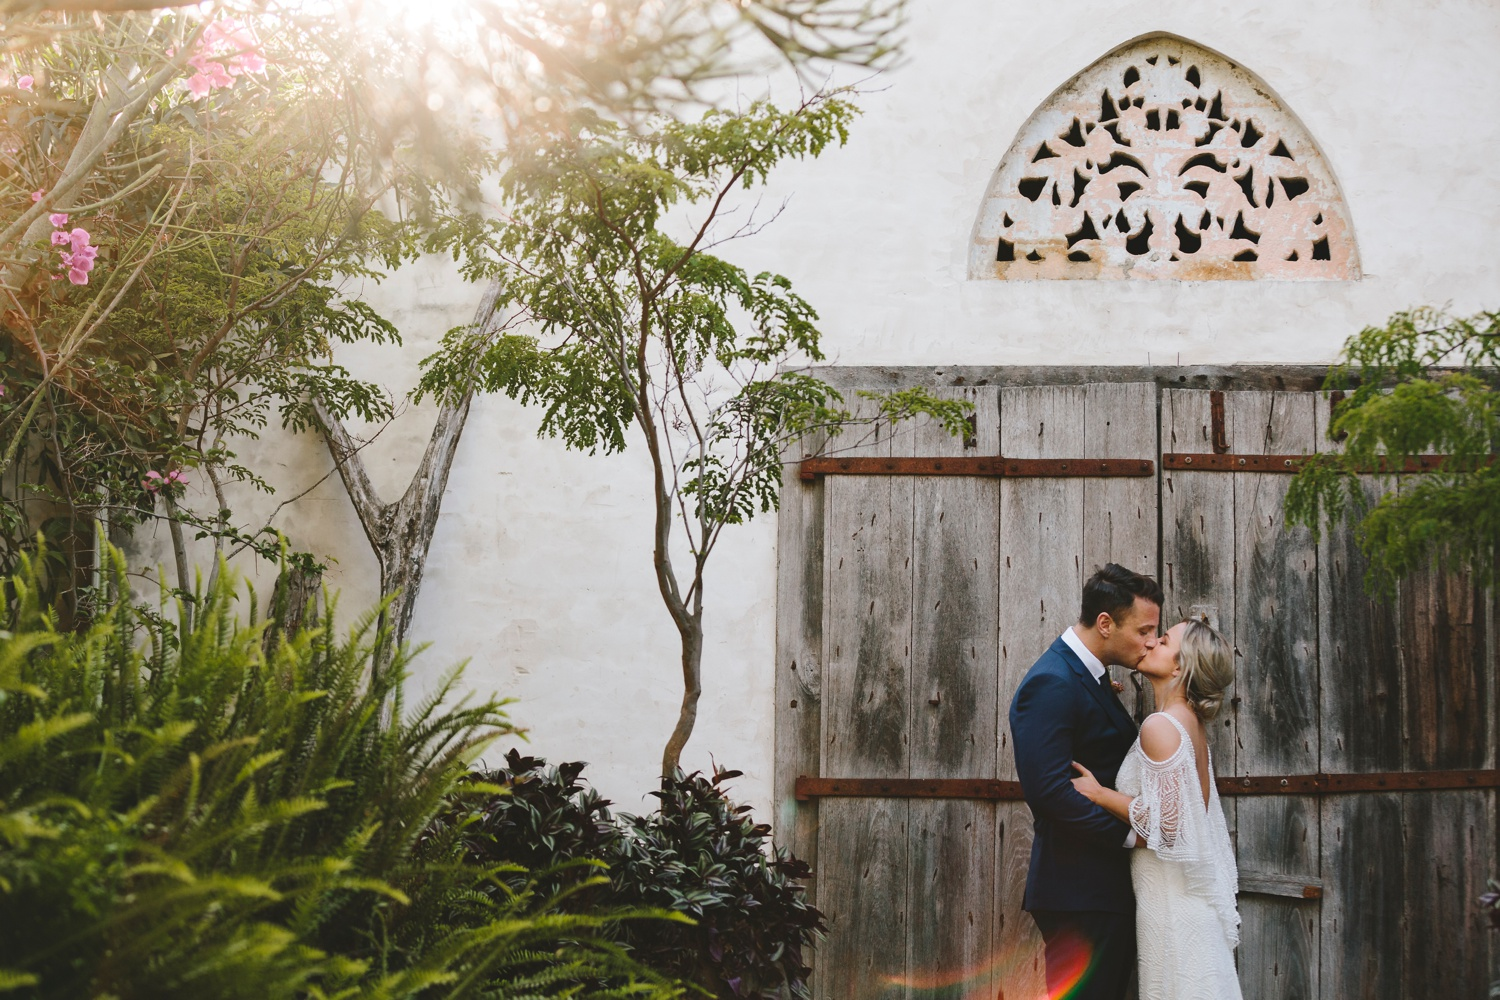 charlie_ray_photography_runaway_romance_elopement_emily_moon_plett_simple_boho_wedding_south_africa_bohemium_0080.jpg